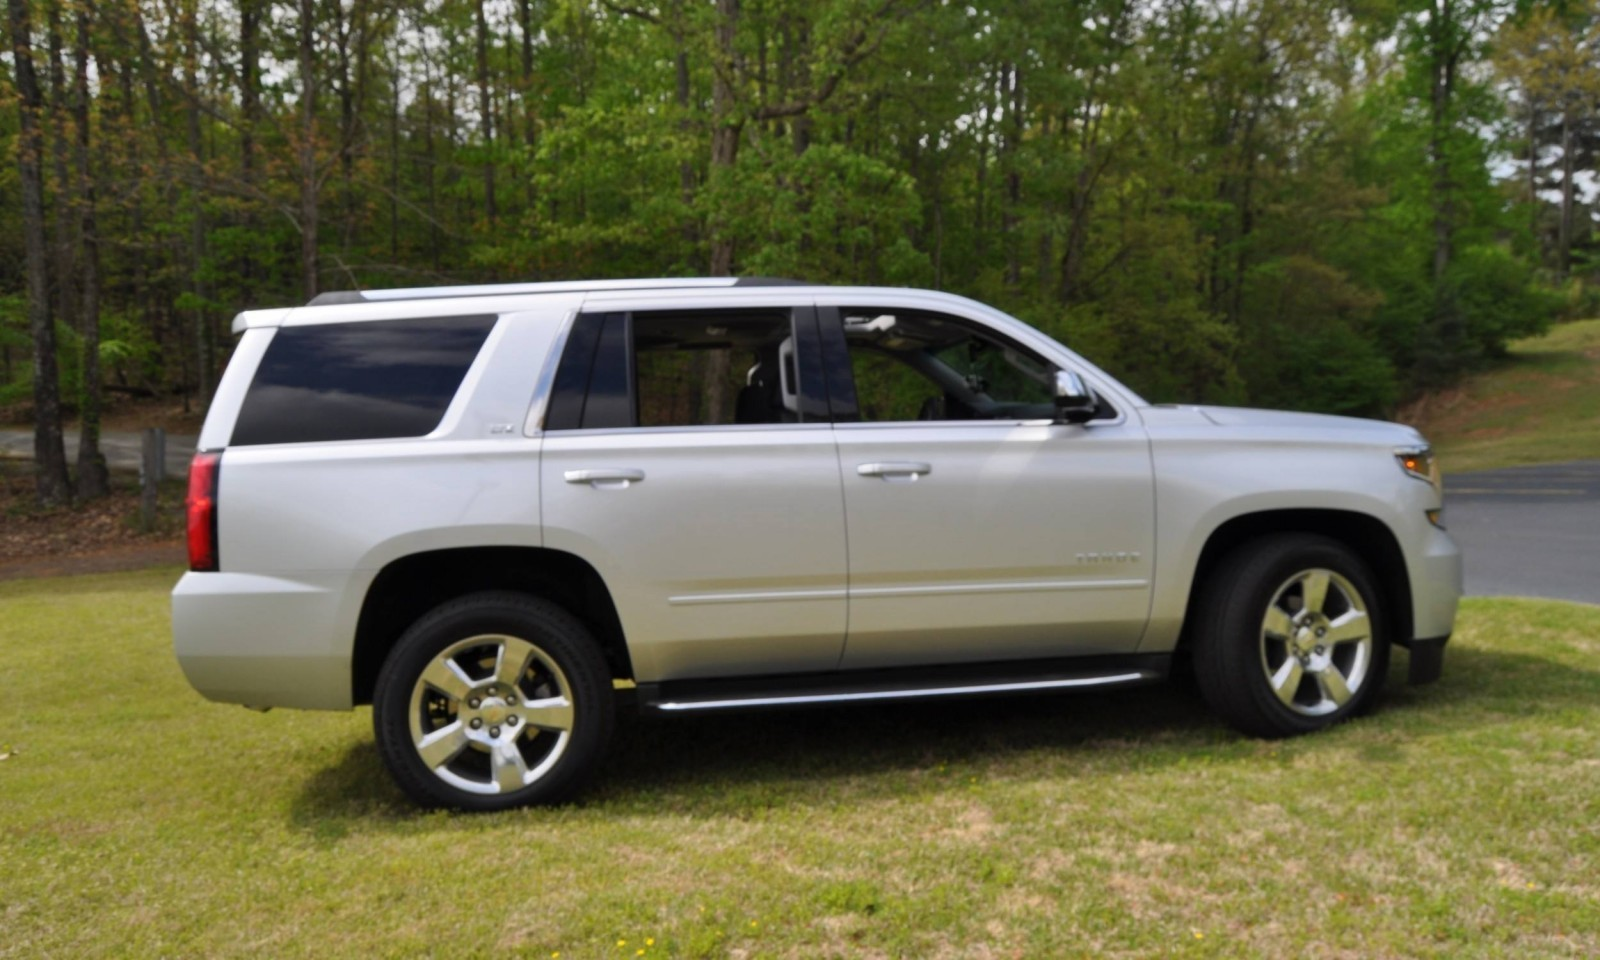 2014 chevrolet tahoe exterior photos new and used car. Black Bedroom Furniture Sets. Home Design Ideas